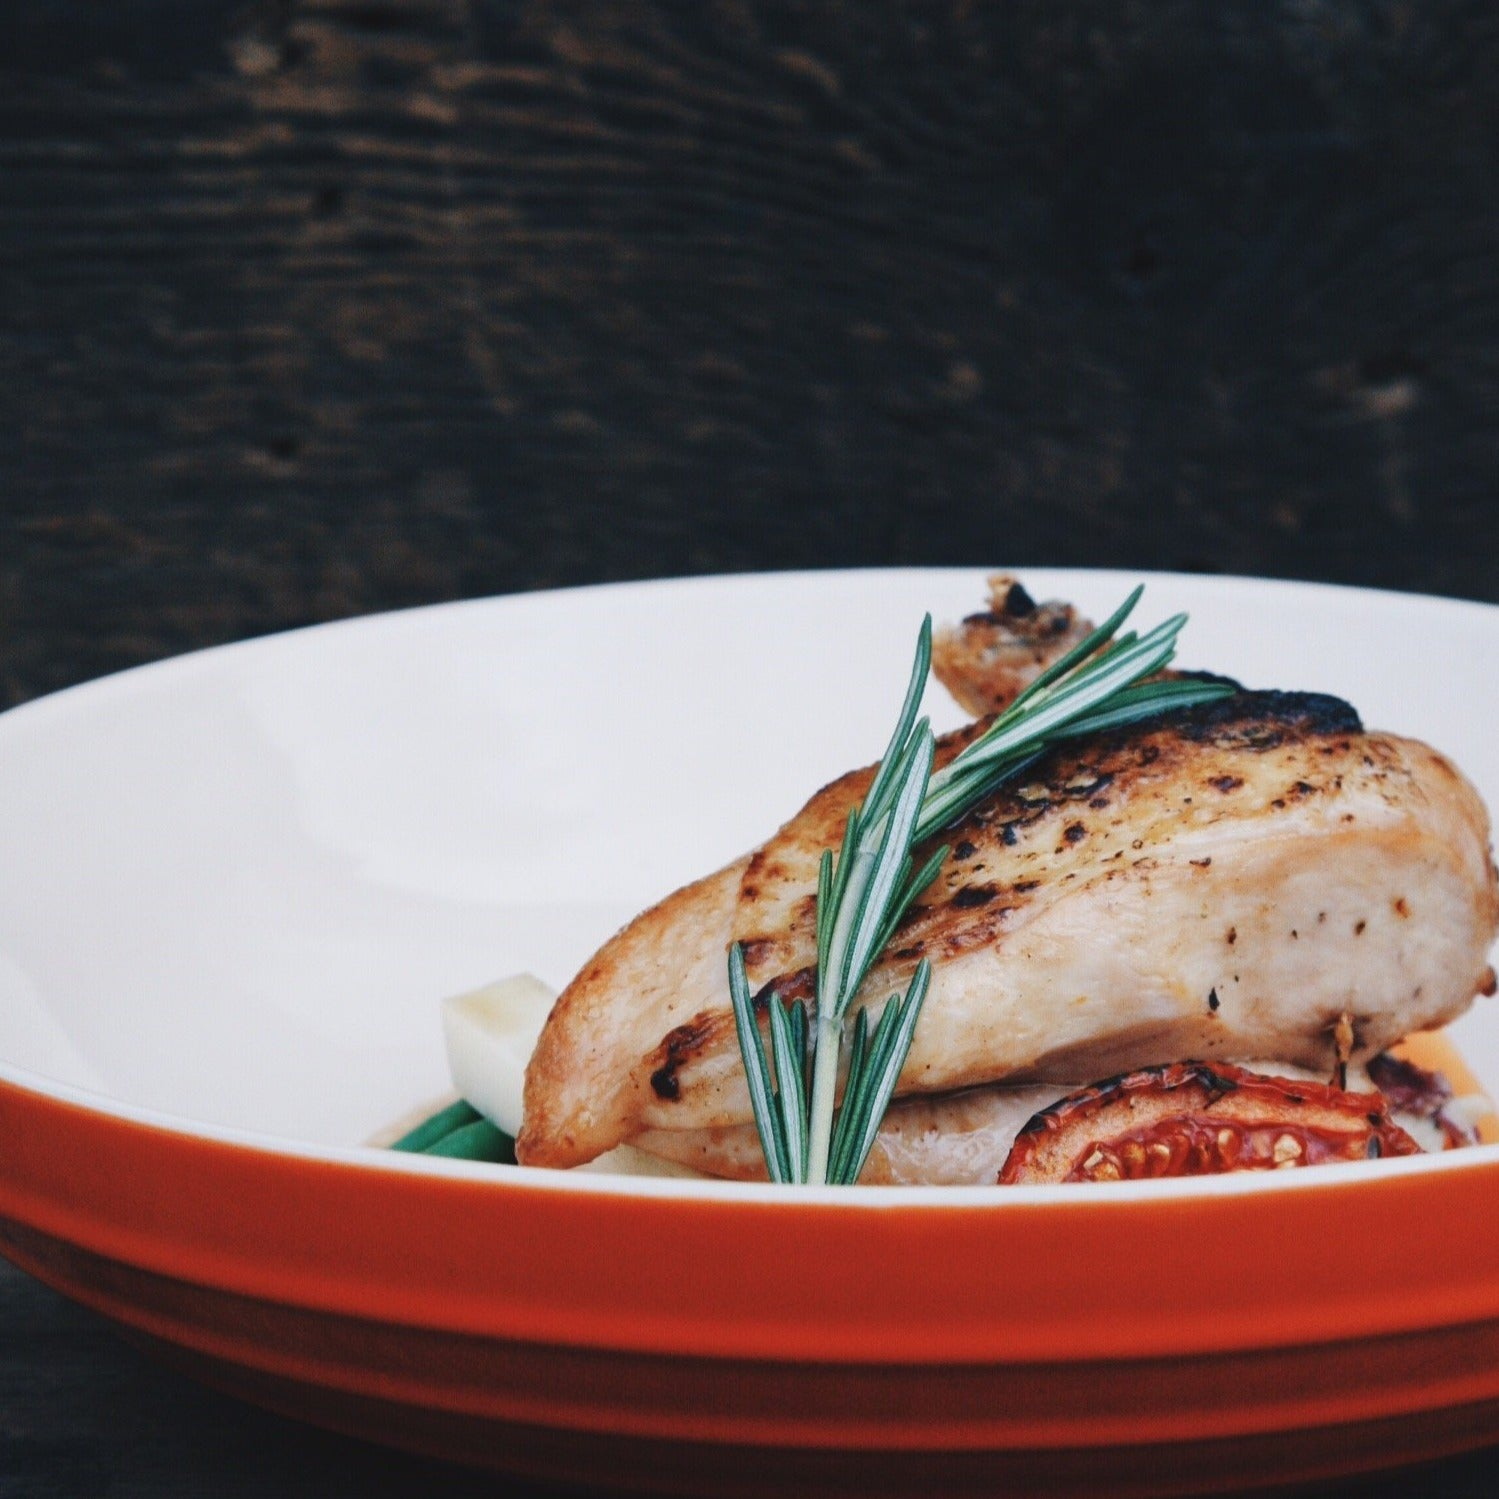 roasted chicken breast supreme- lemon and rosemary (per portion, 1 breast)